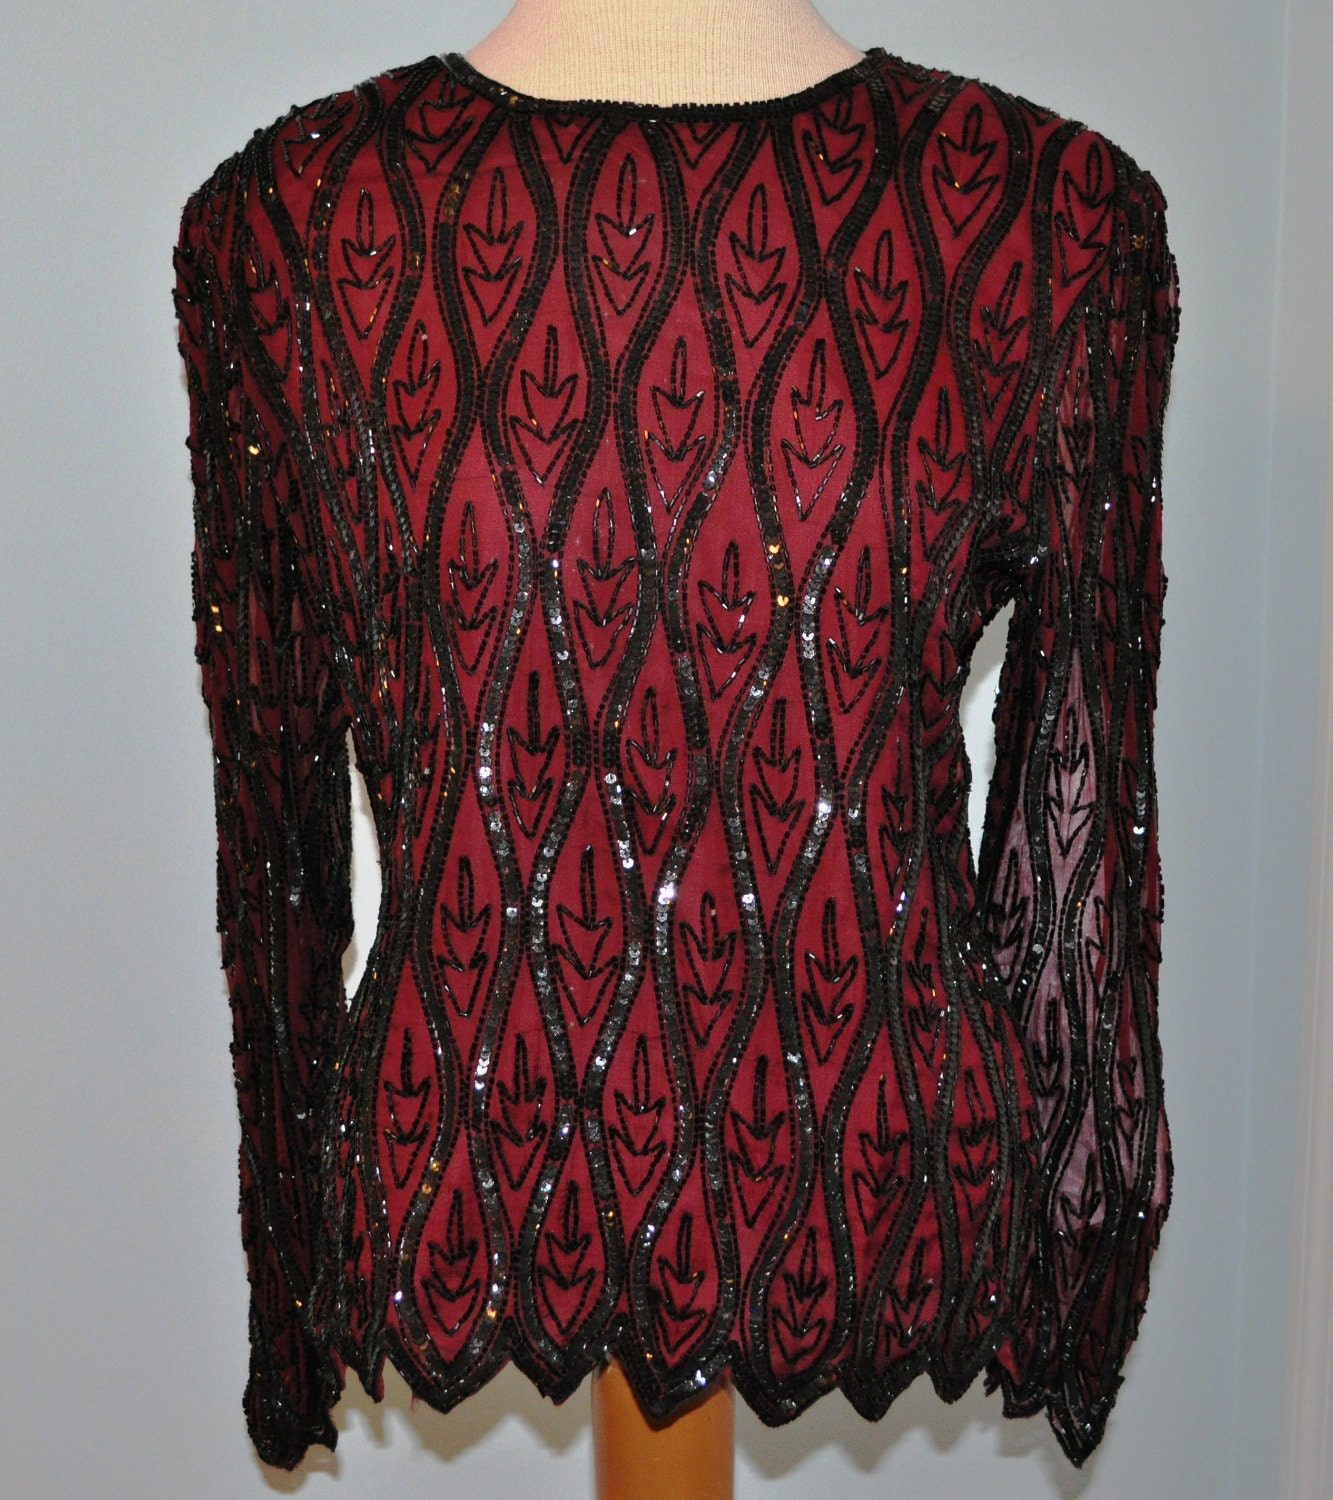 Shiny s (circa) evening blouse. Comes in red with a revere front.